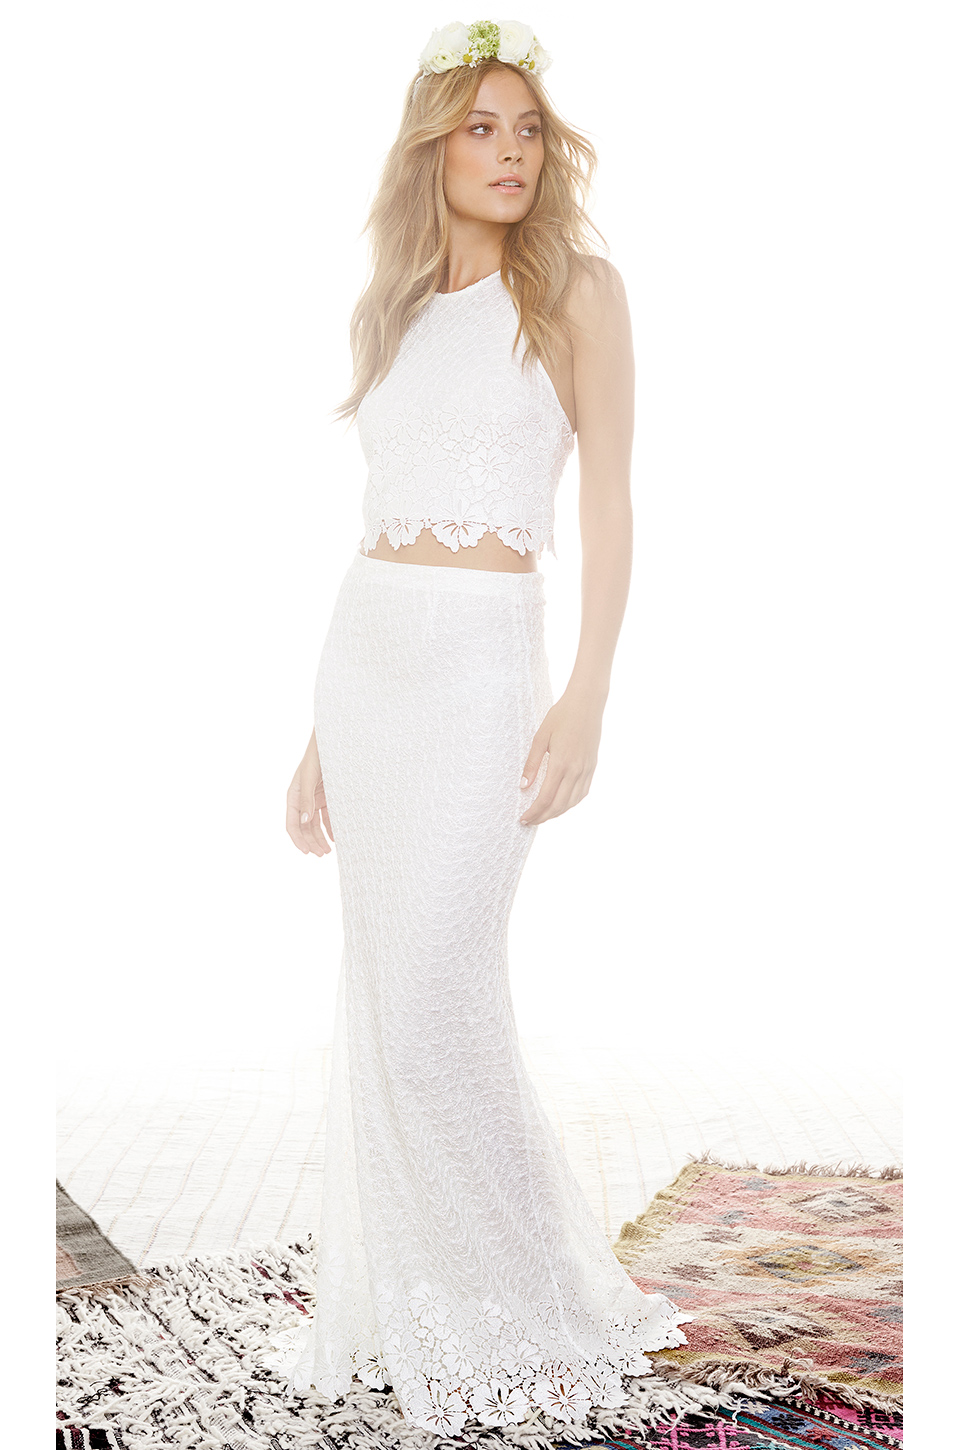 REVOLVE Clothing 2015 Wedding Gown Collection 8